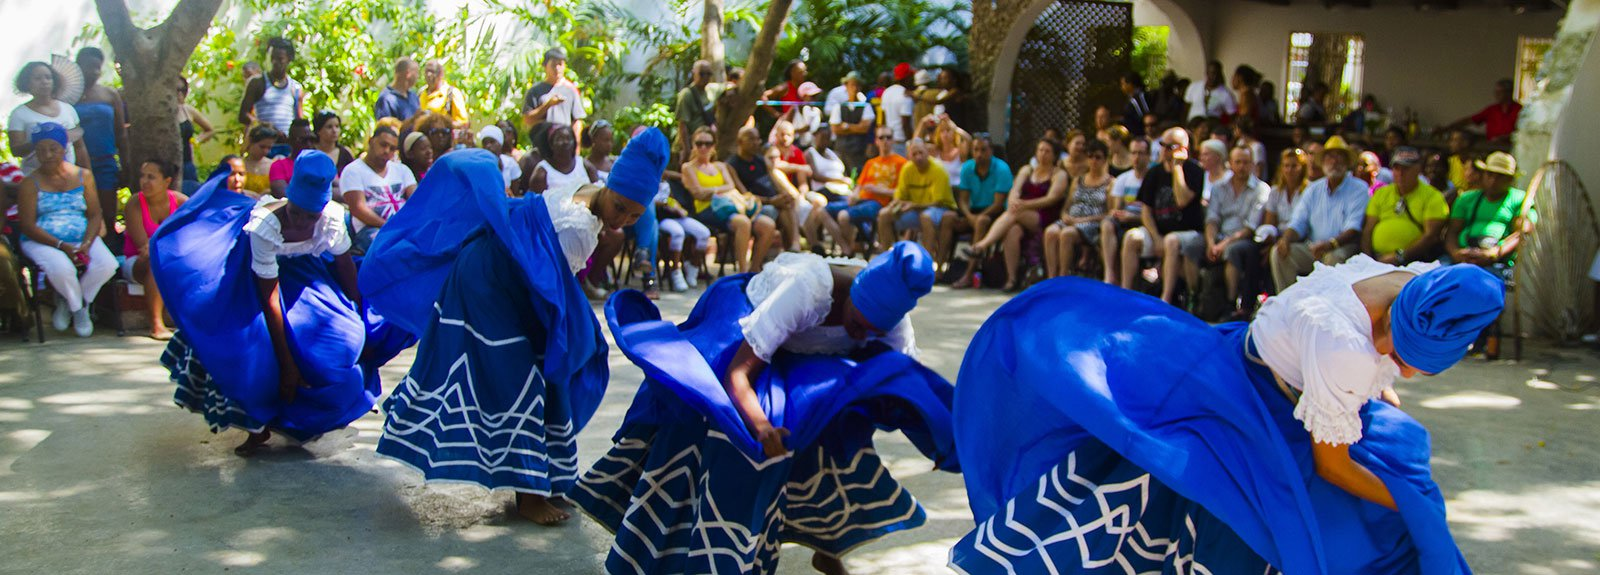 Females dancers with blue and white dresses in a performance at Palenque